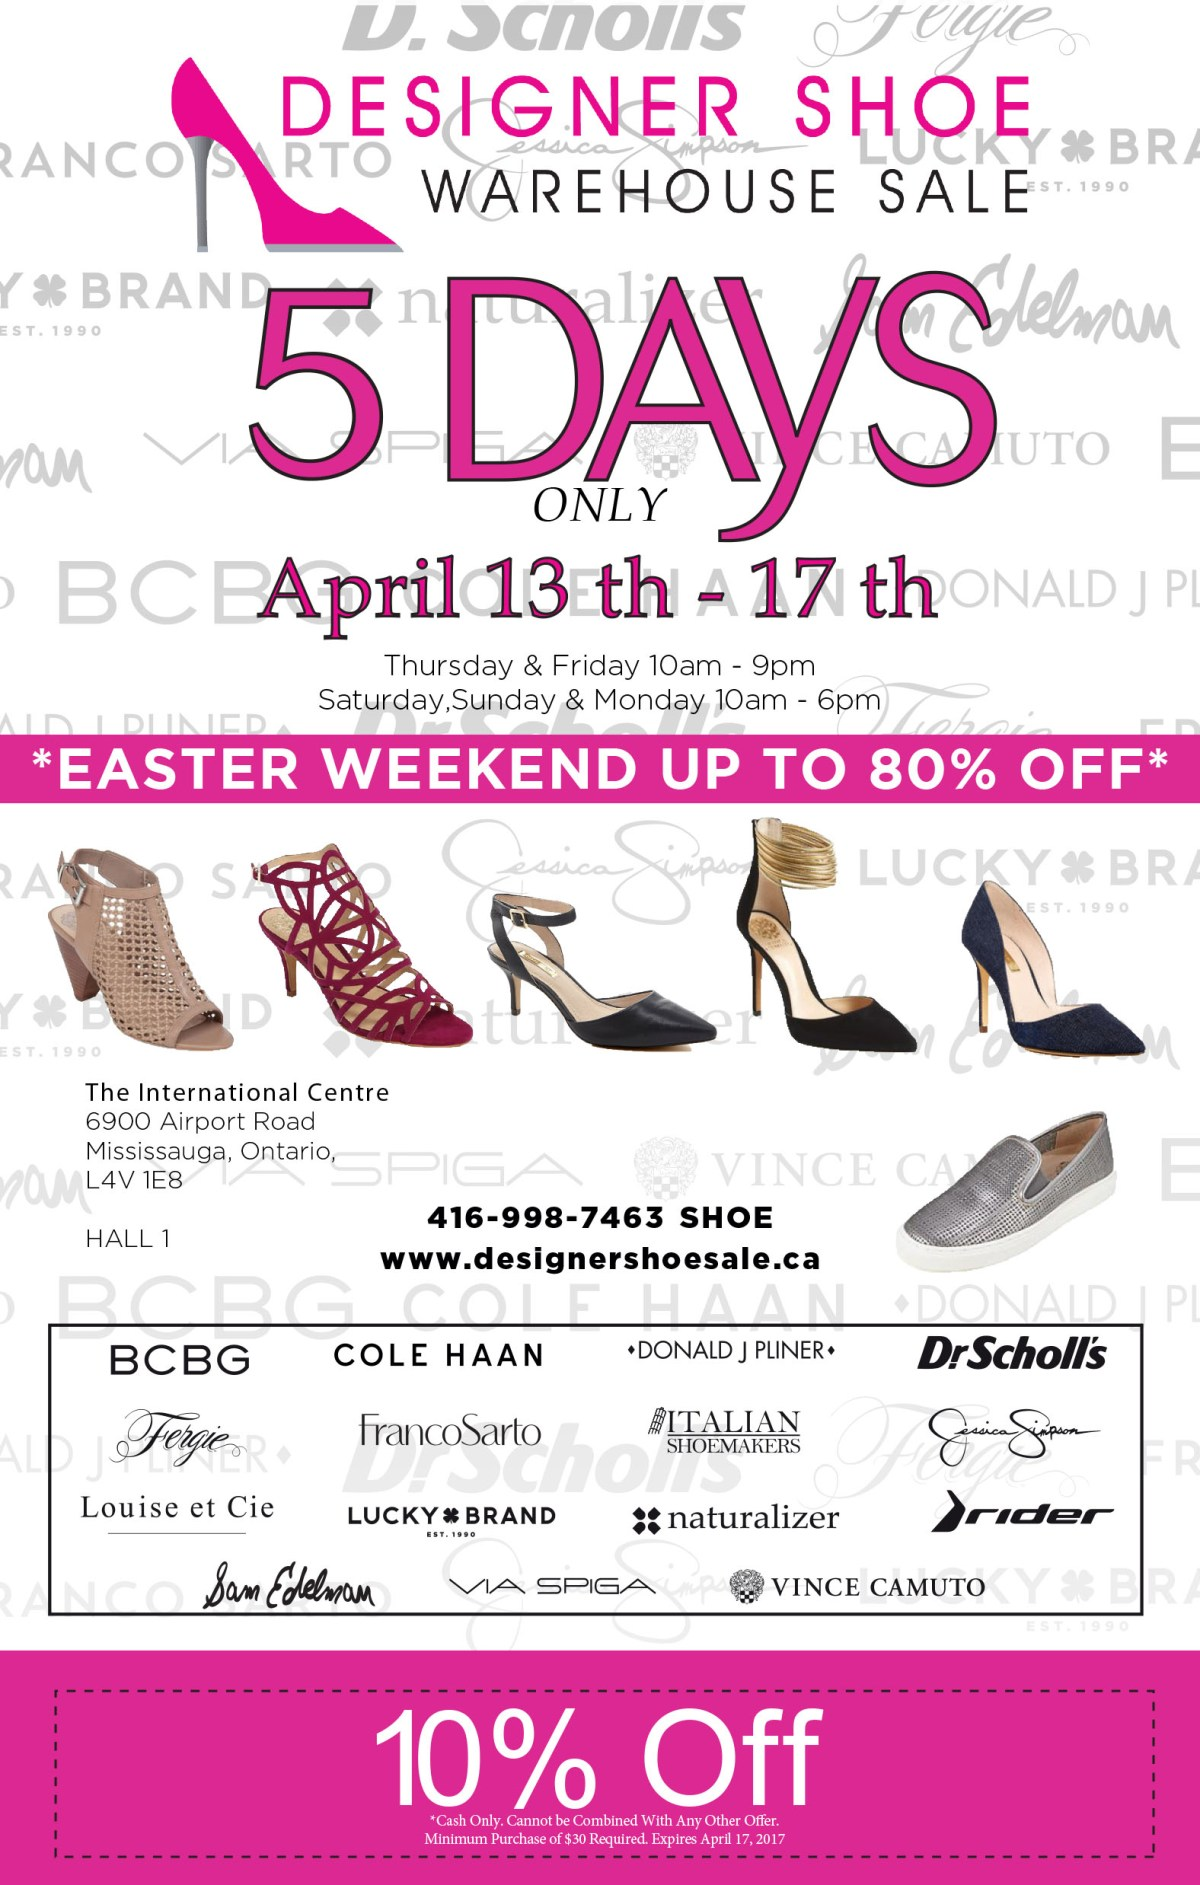 designer shoe warehouse - Bcbg Sample Sale